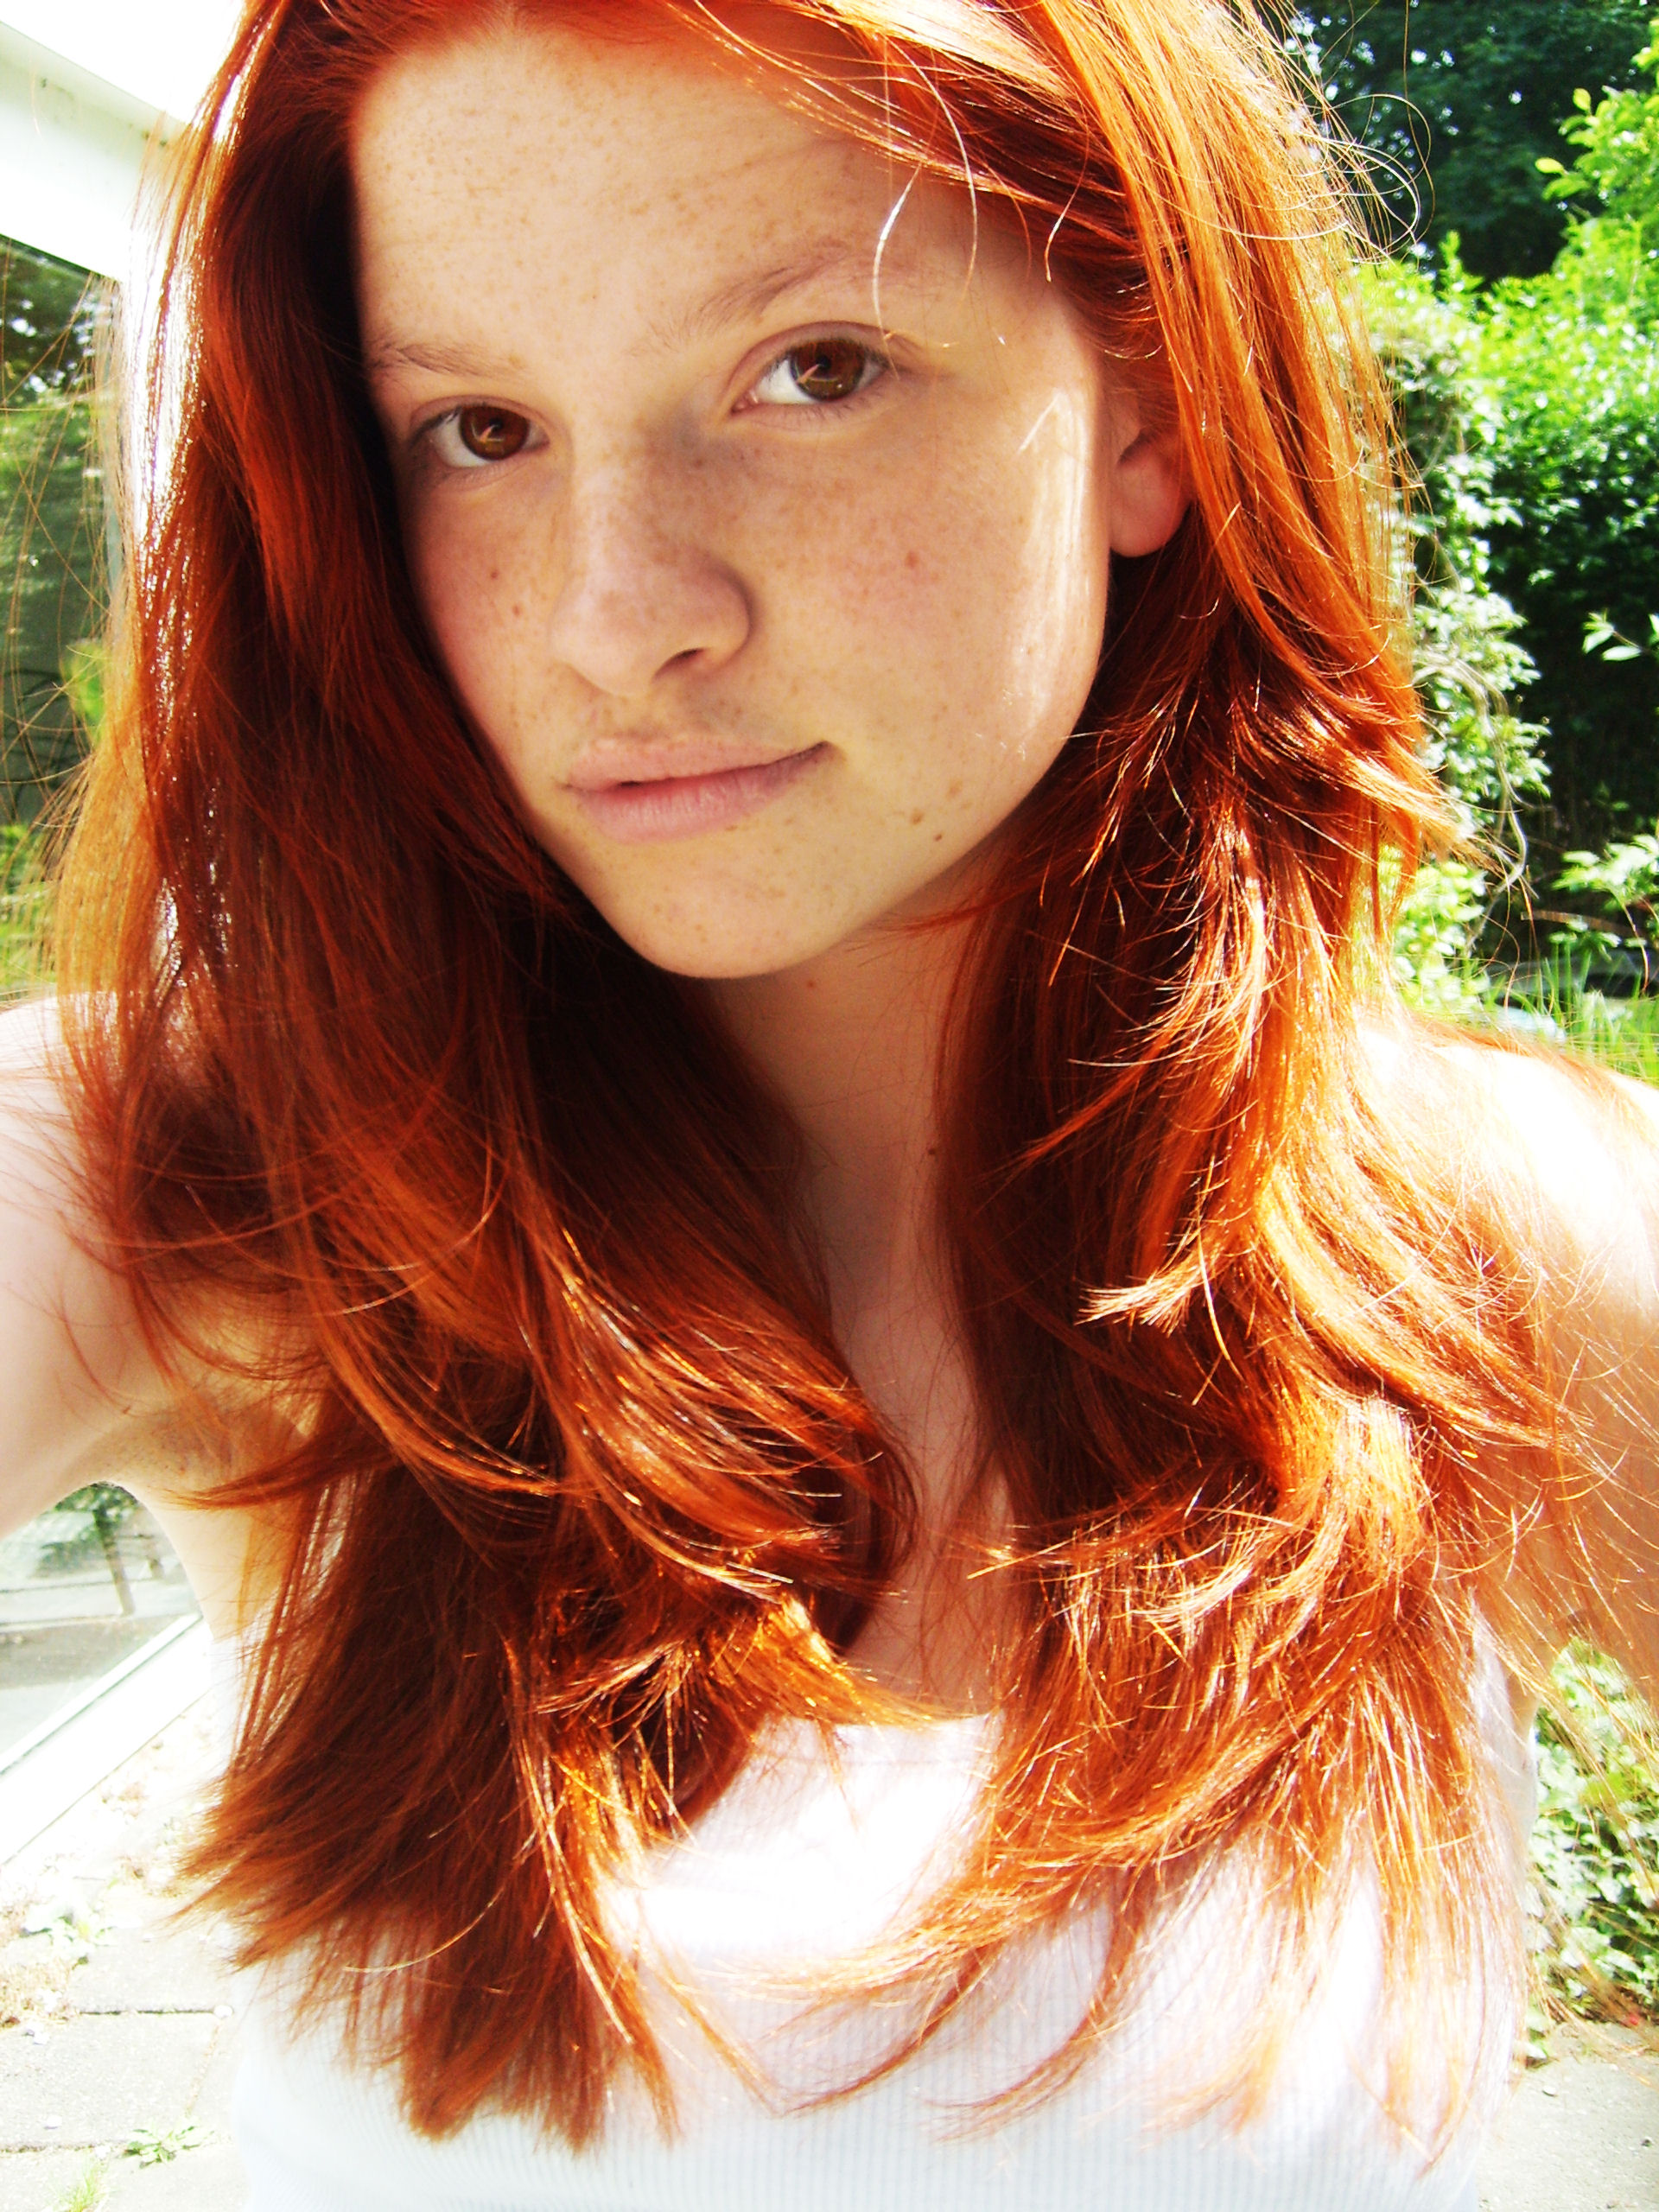 http://fc02.deviantart.net/fs32/f/2008/216/9/2/Redhead_by_Implified.jpg